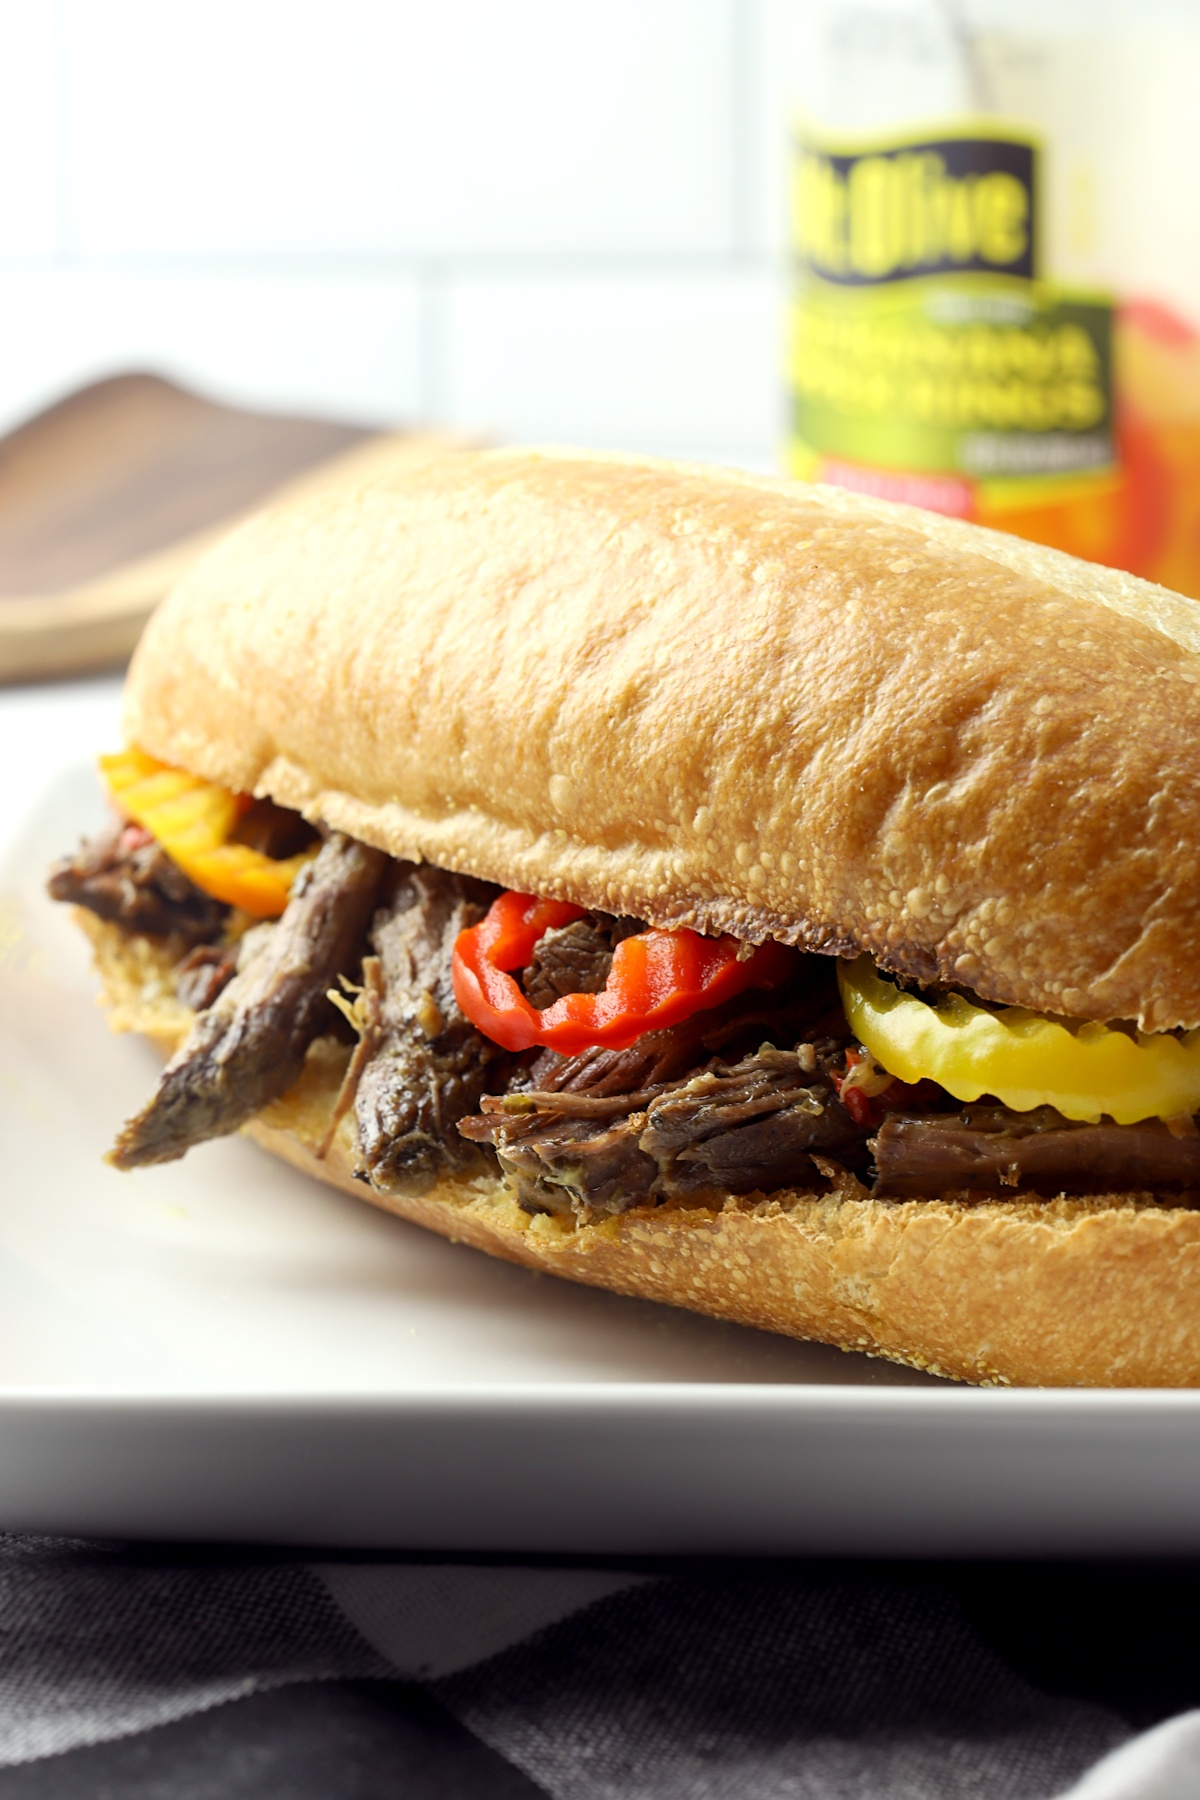 Italian beef sandwich on a white plate.